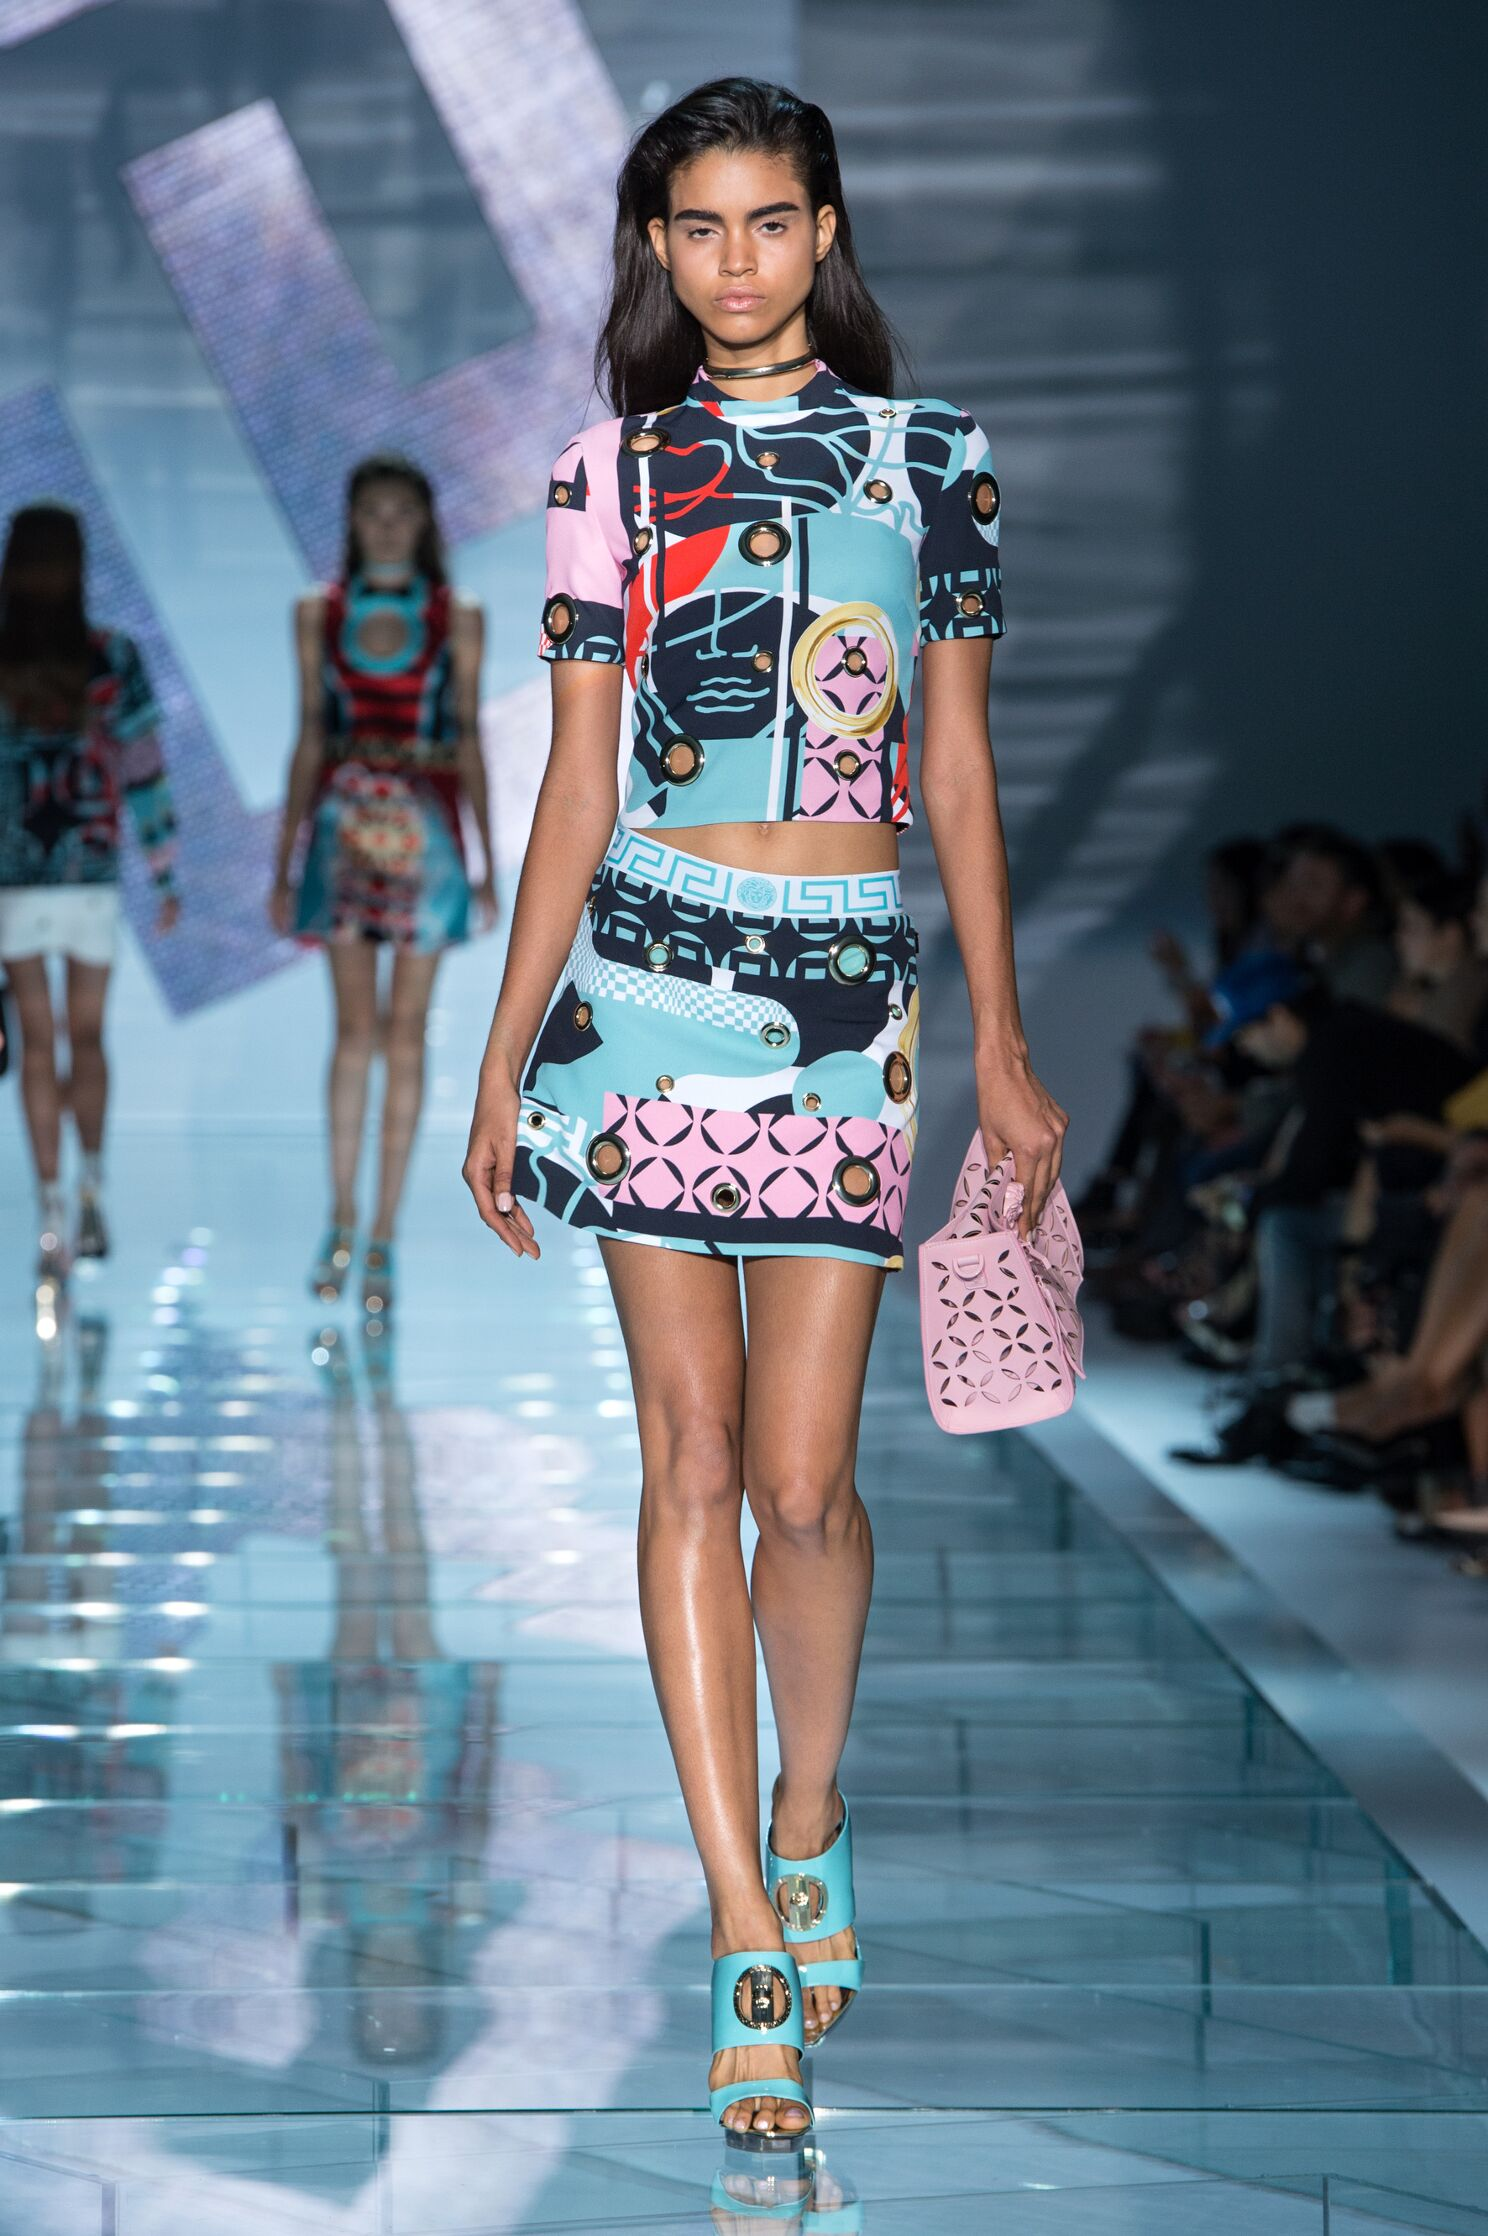 Catwalk Fashion Show 2015 Catwalk Versace Woman Fashion